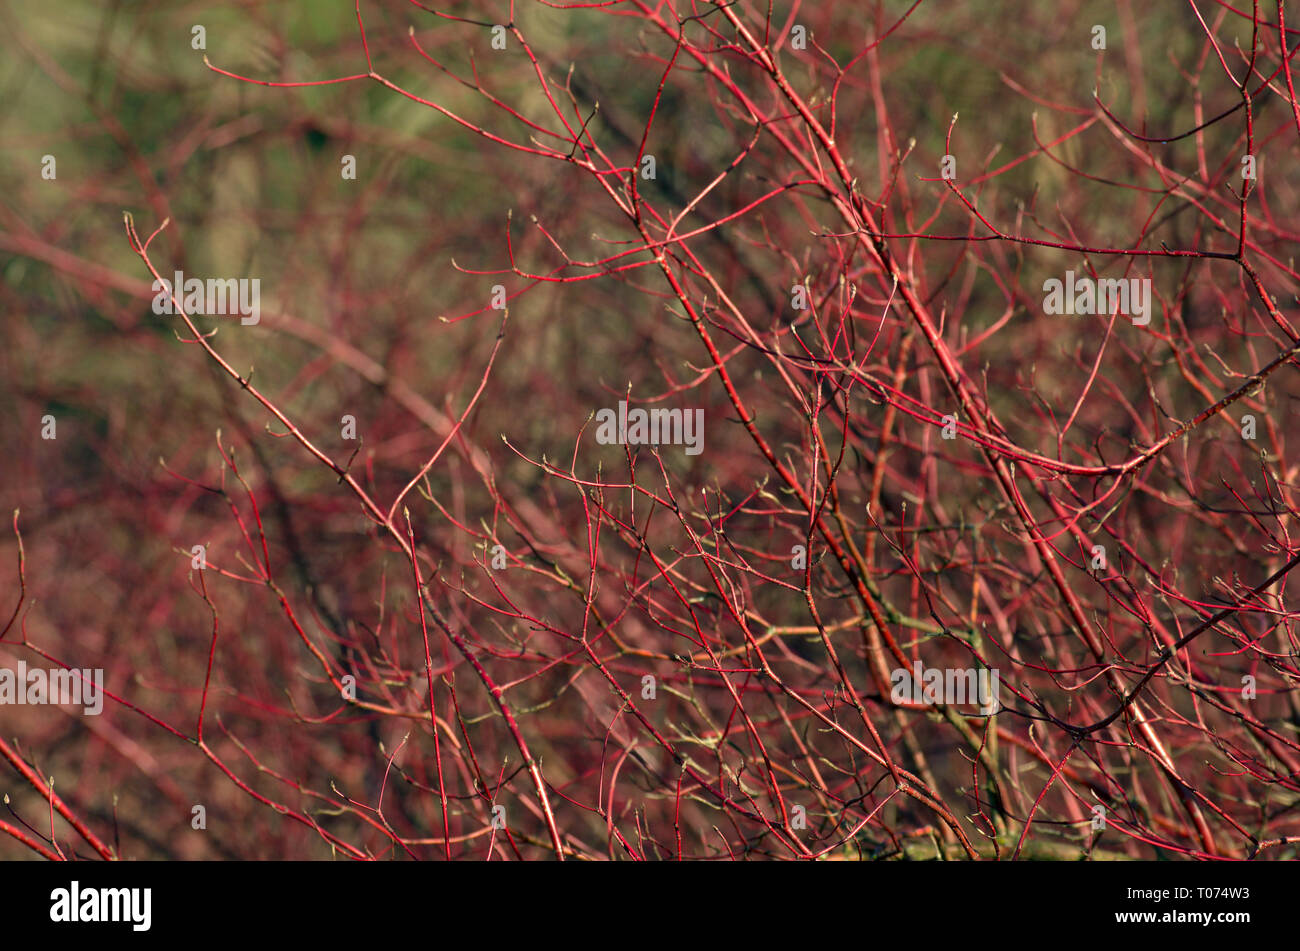 Shrub with red branches and green swelling buds named White dogwood under the spring sun - Stock Image